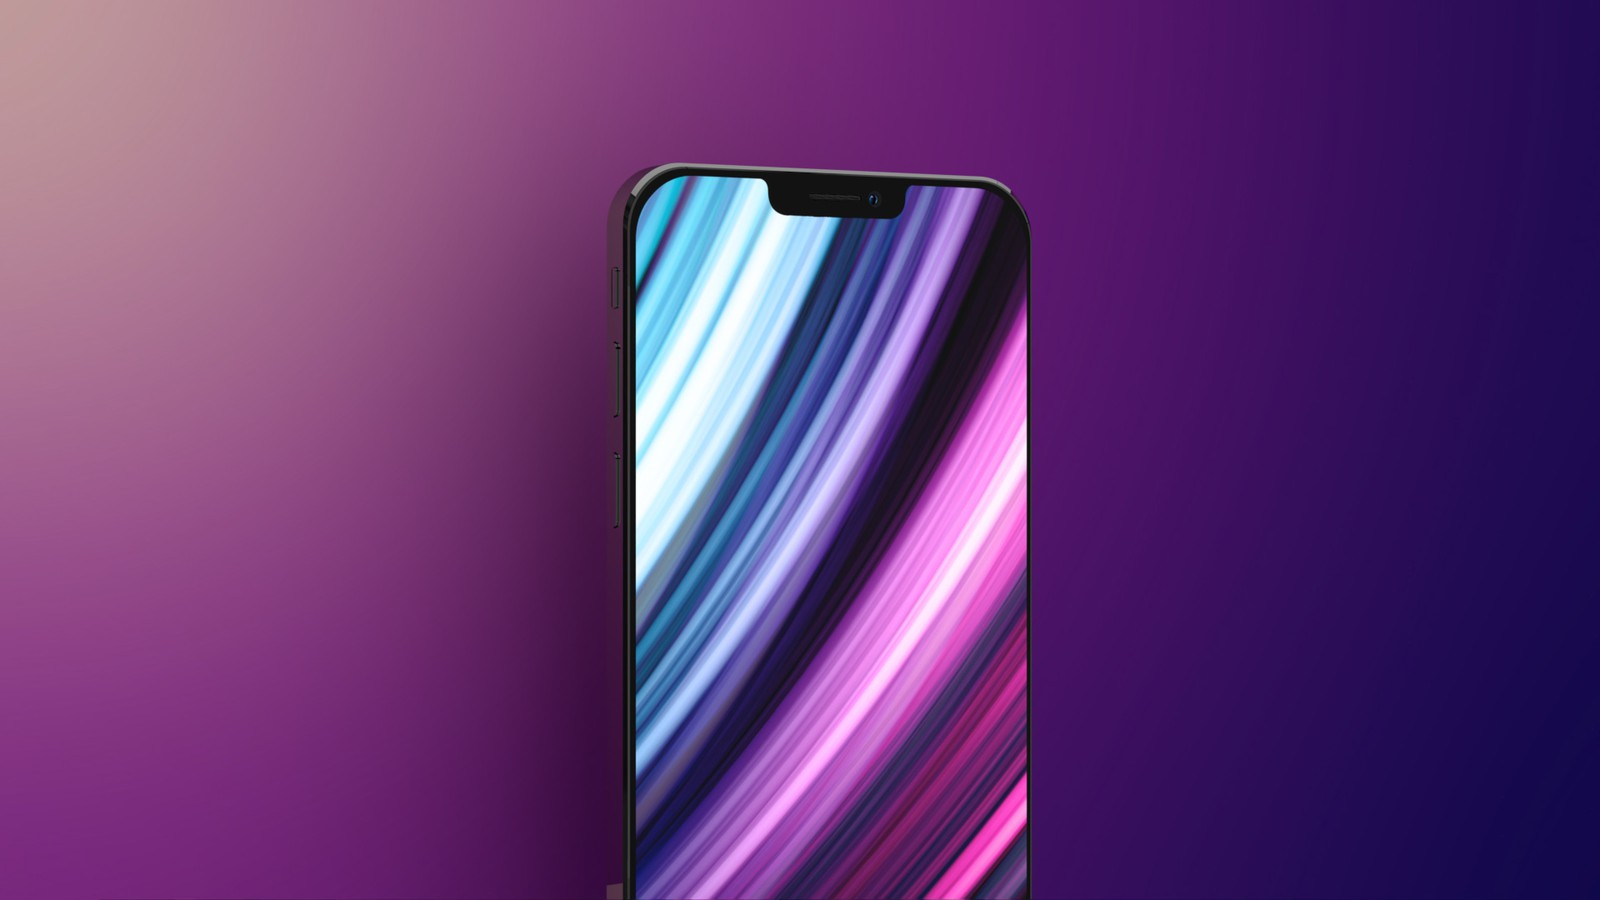 iPhone-12-Purple.jpg